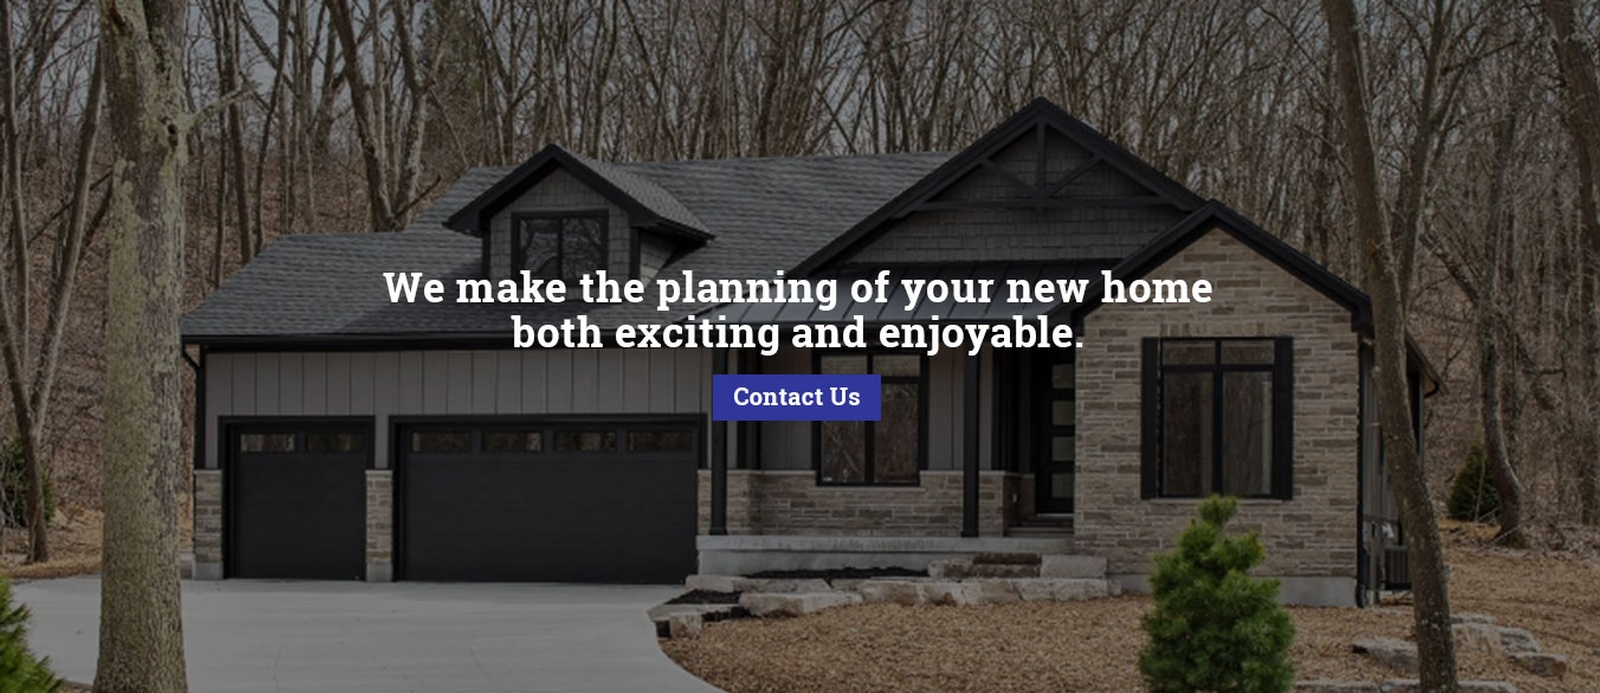 We make the planning of your new home both exciting and enjoyable